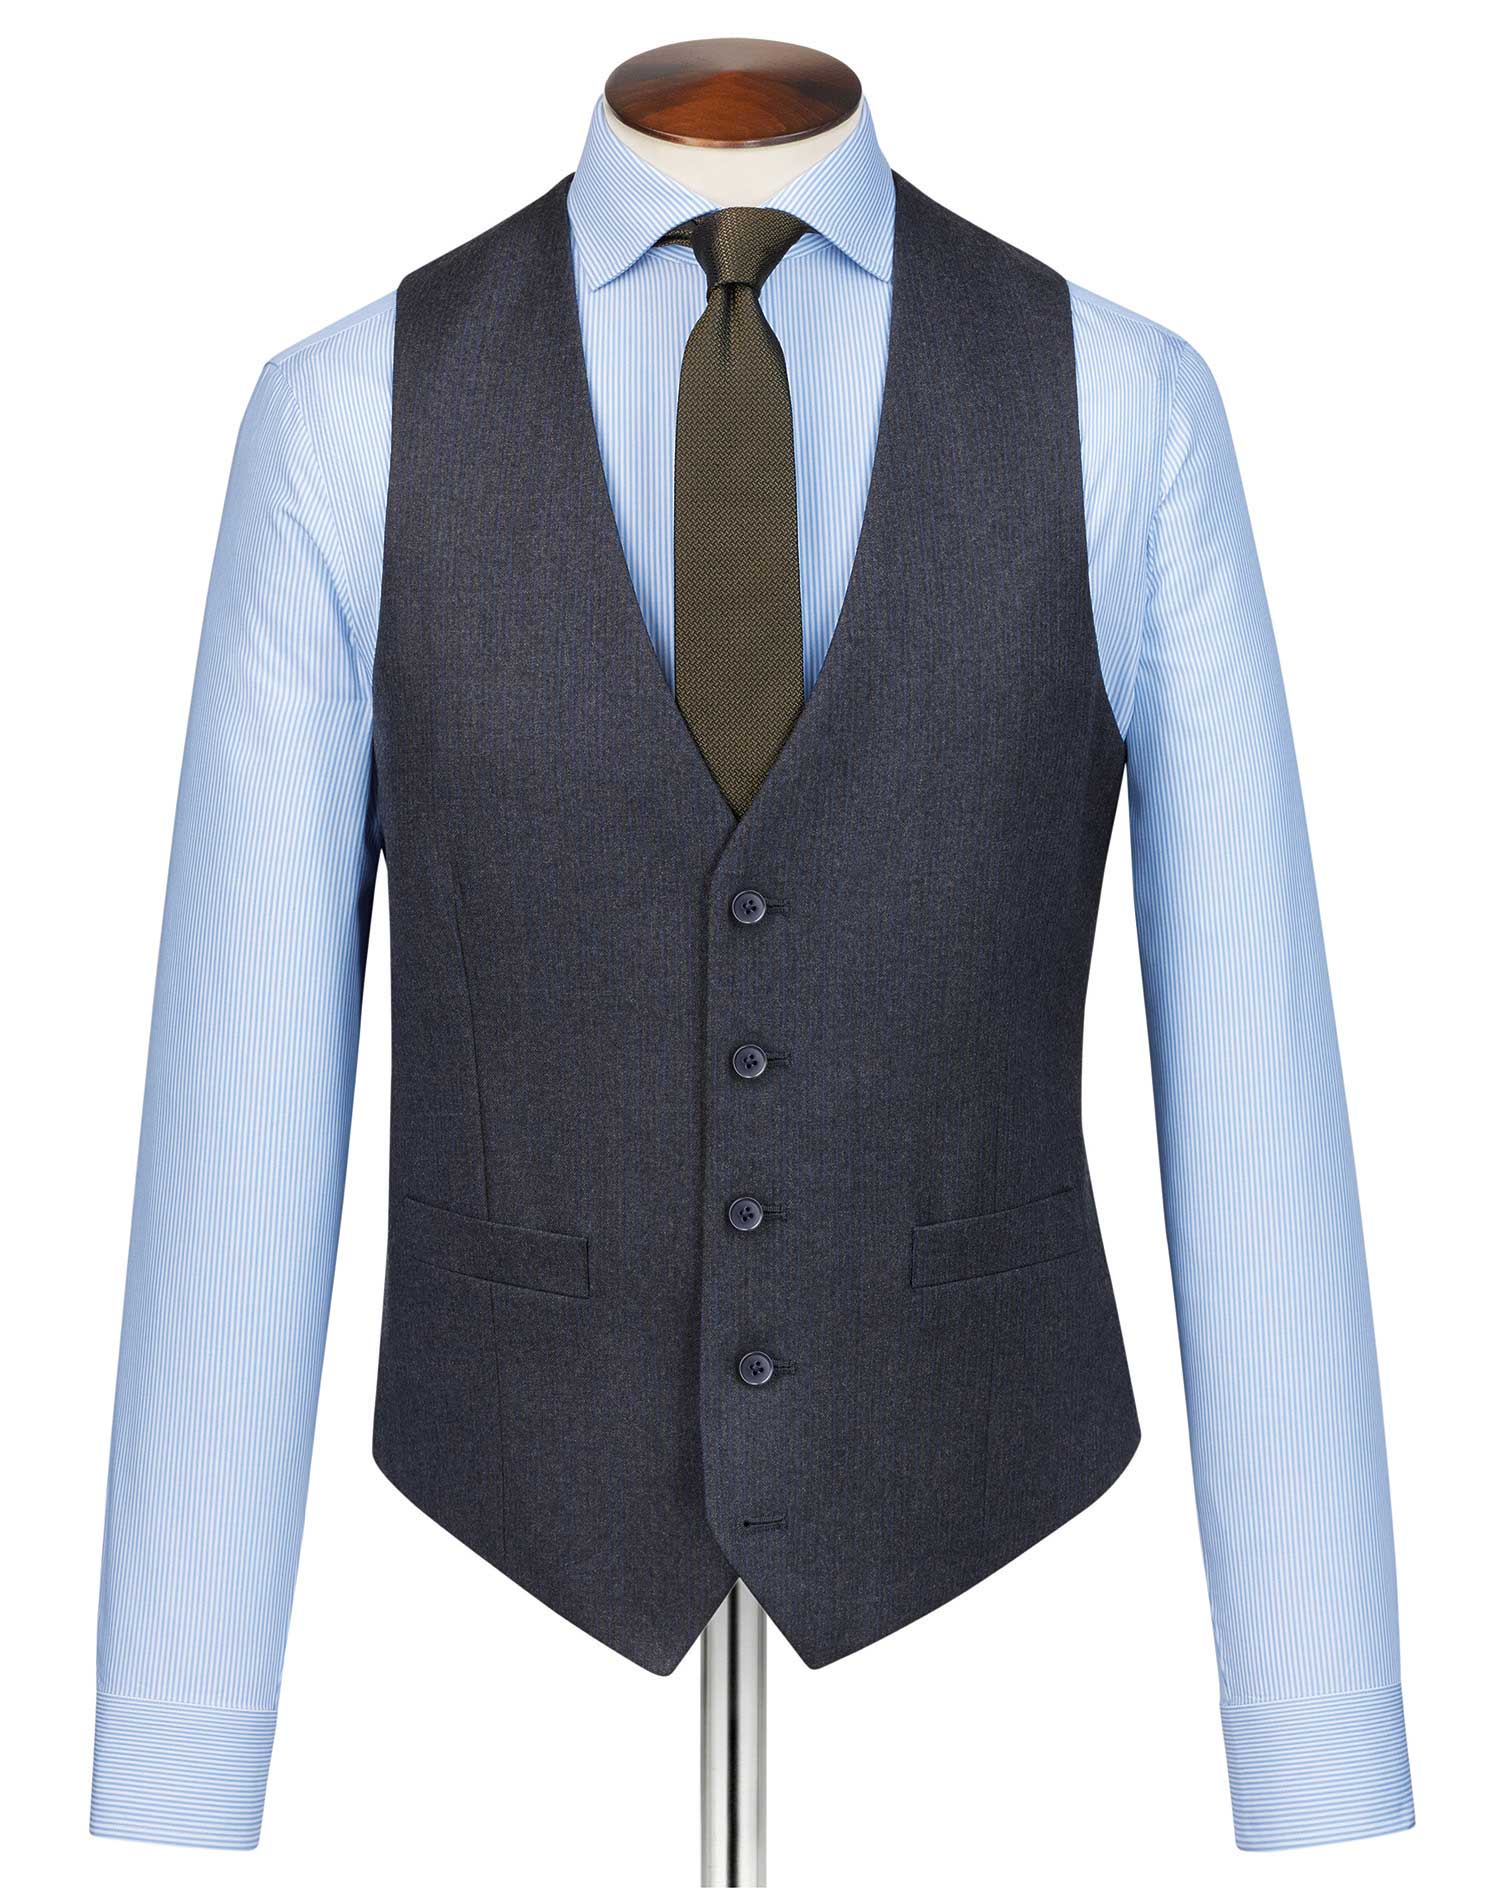 Charcoal and Blue Adjustable Fit Stripe Flannel Suit Wool Waistcoat Size w36 by Charles Tyrwhitt